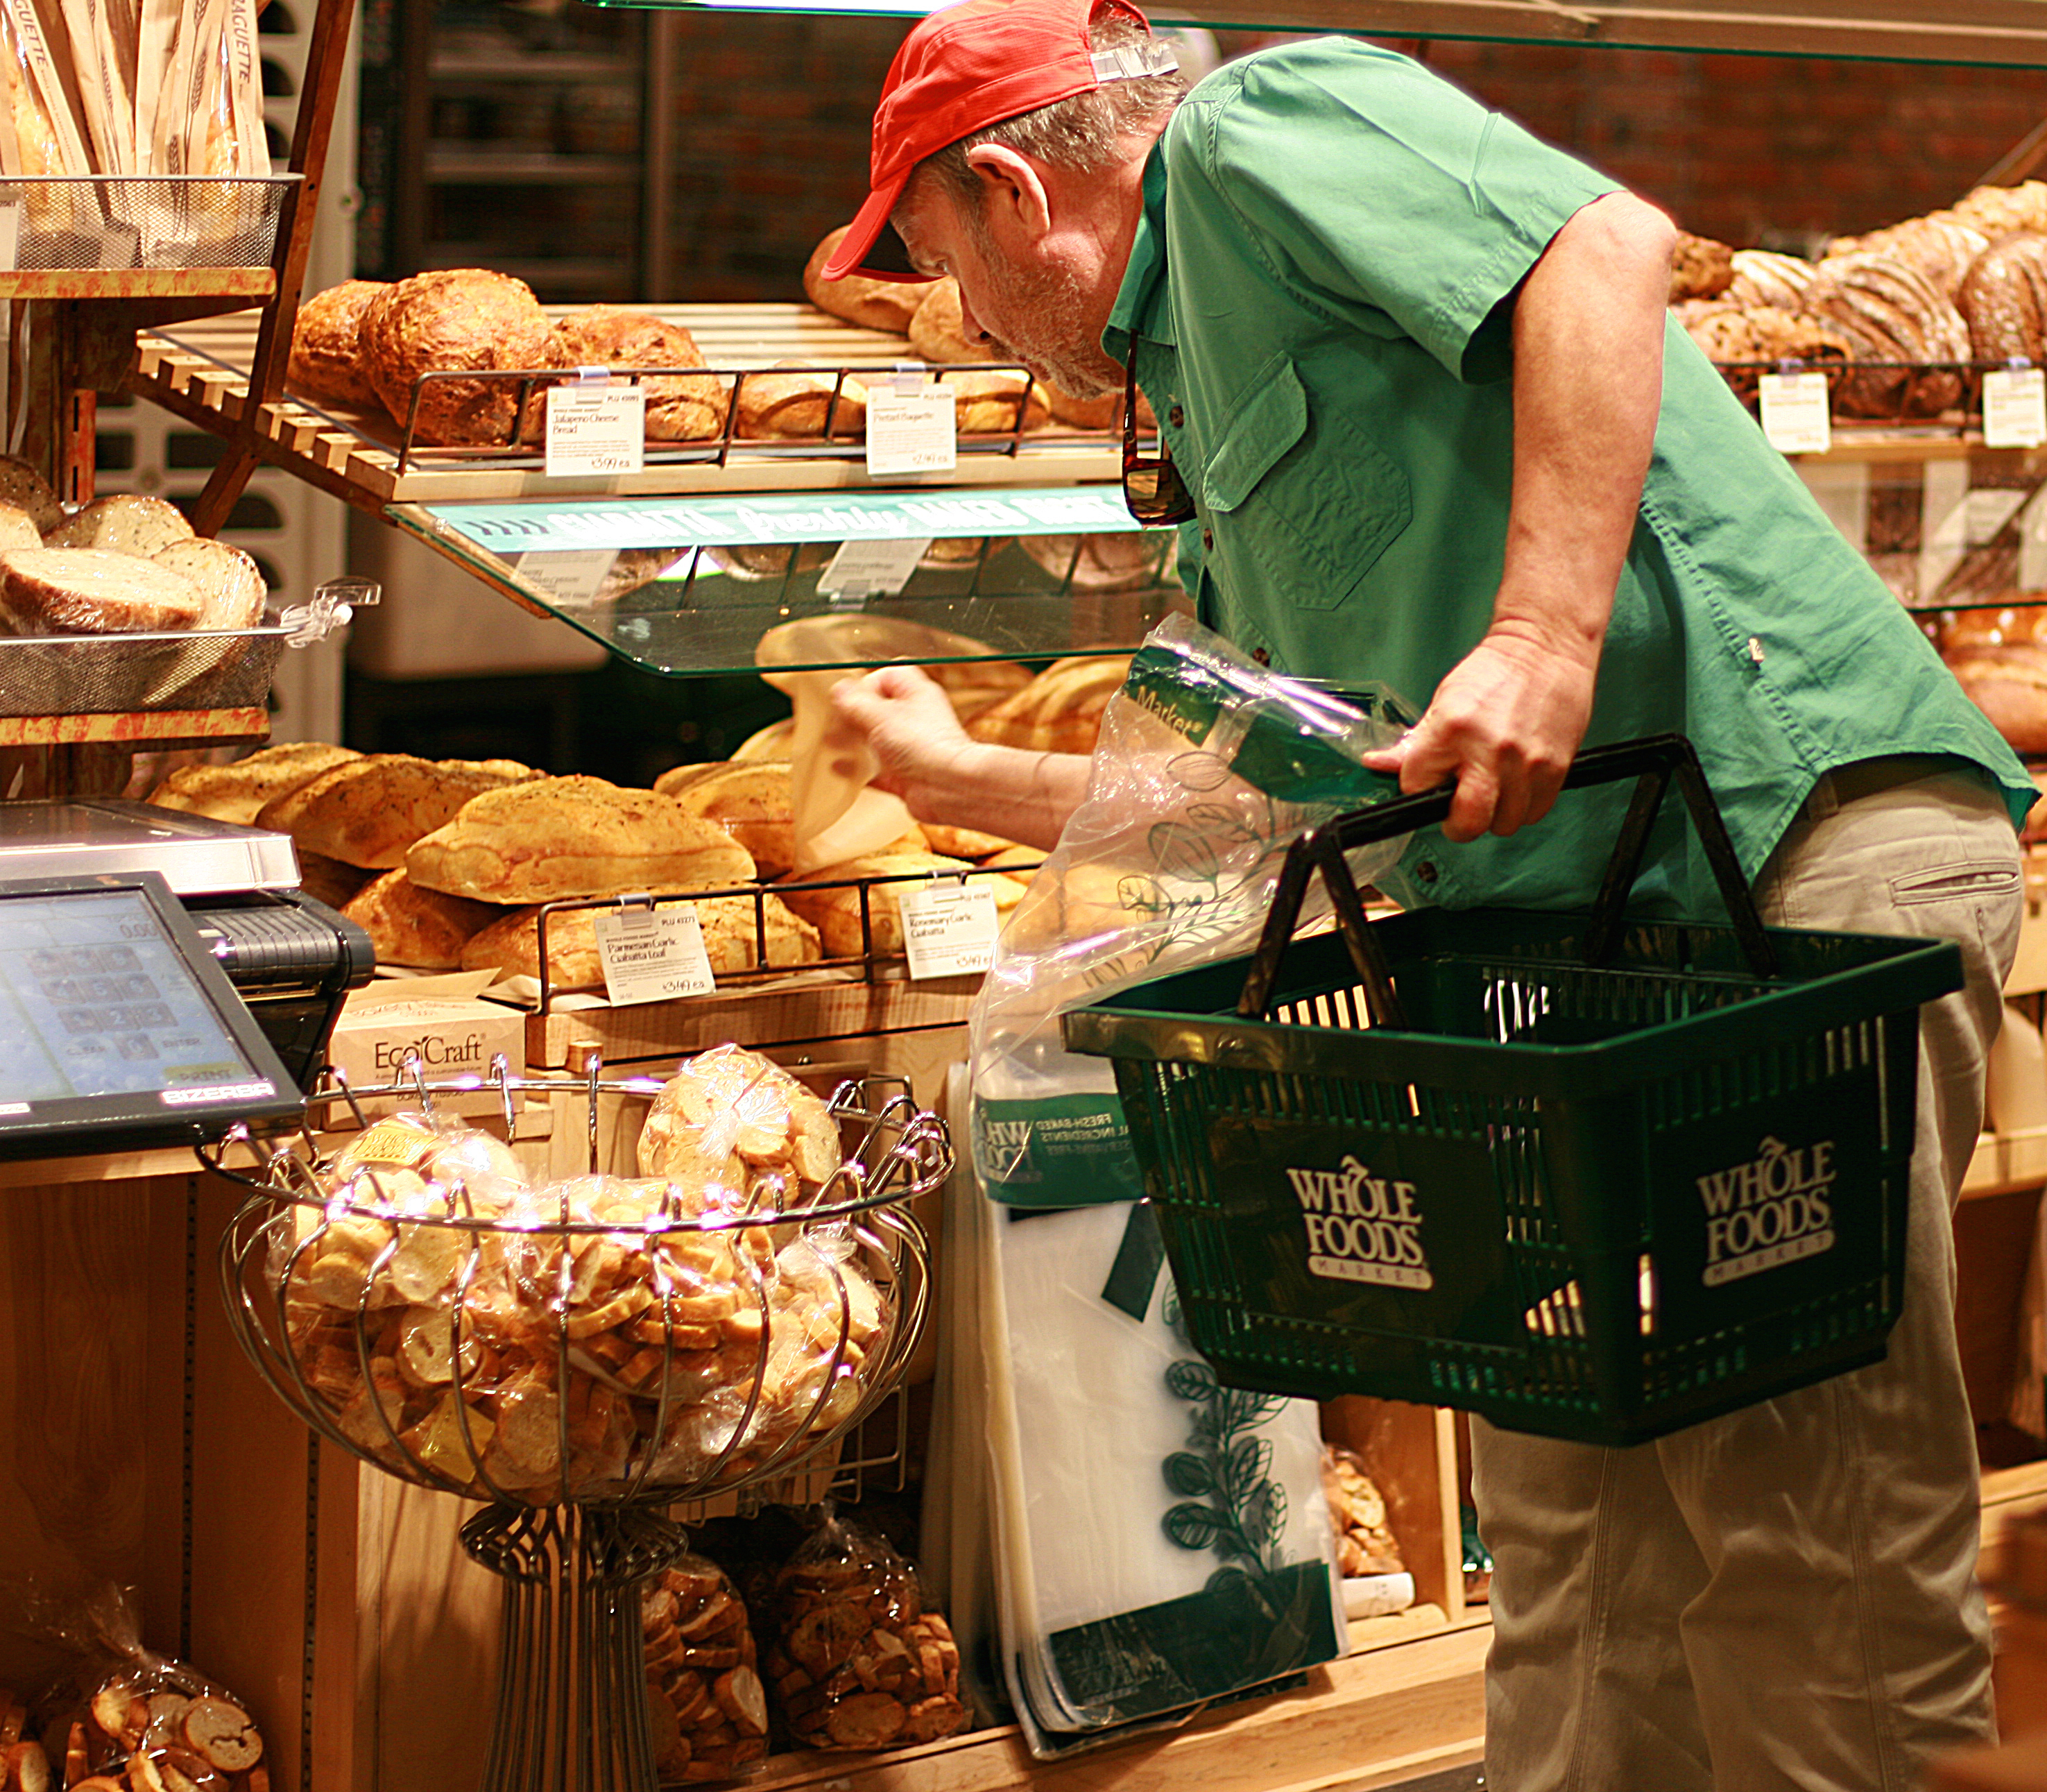 A whole foods shopper inspects prices and food. While services such as Instacart may cut down on actual shopping time, wait times for delivery can take up to two hours and customers are trusting someone else to pick their food. Photo by Silvana Di Ravenna